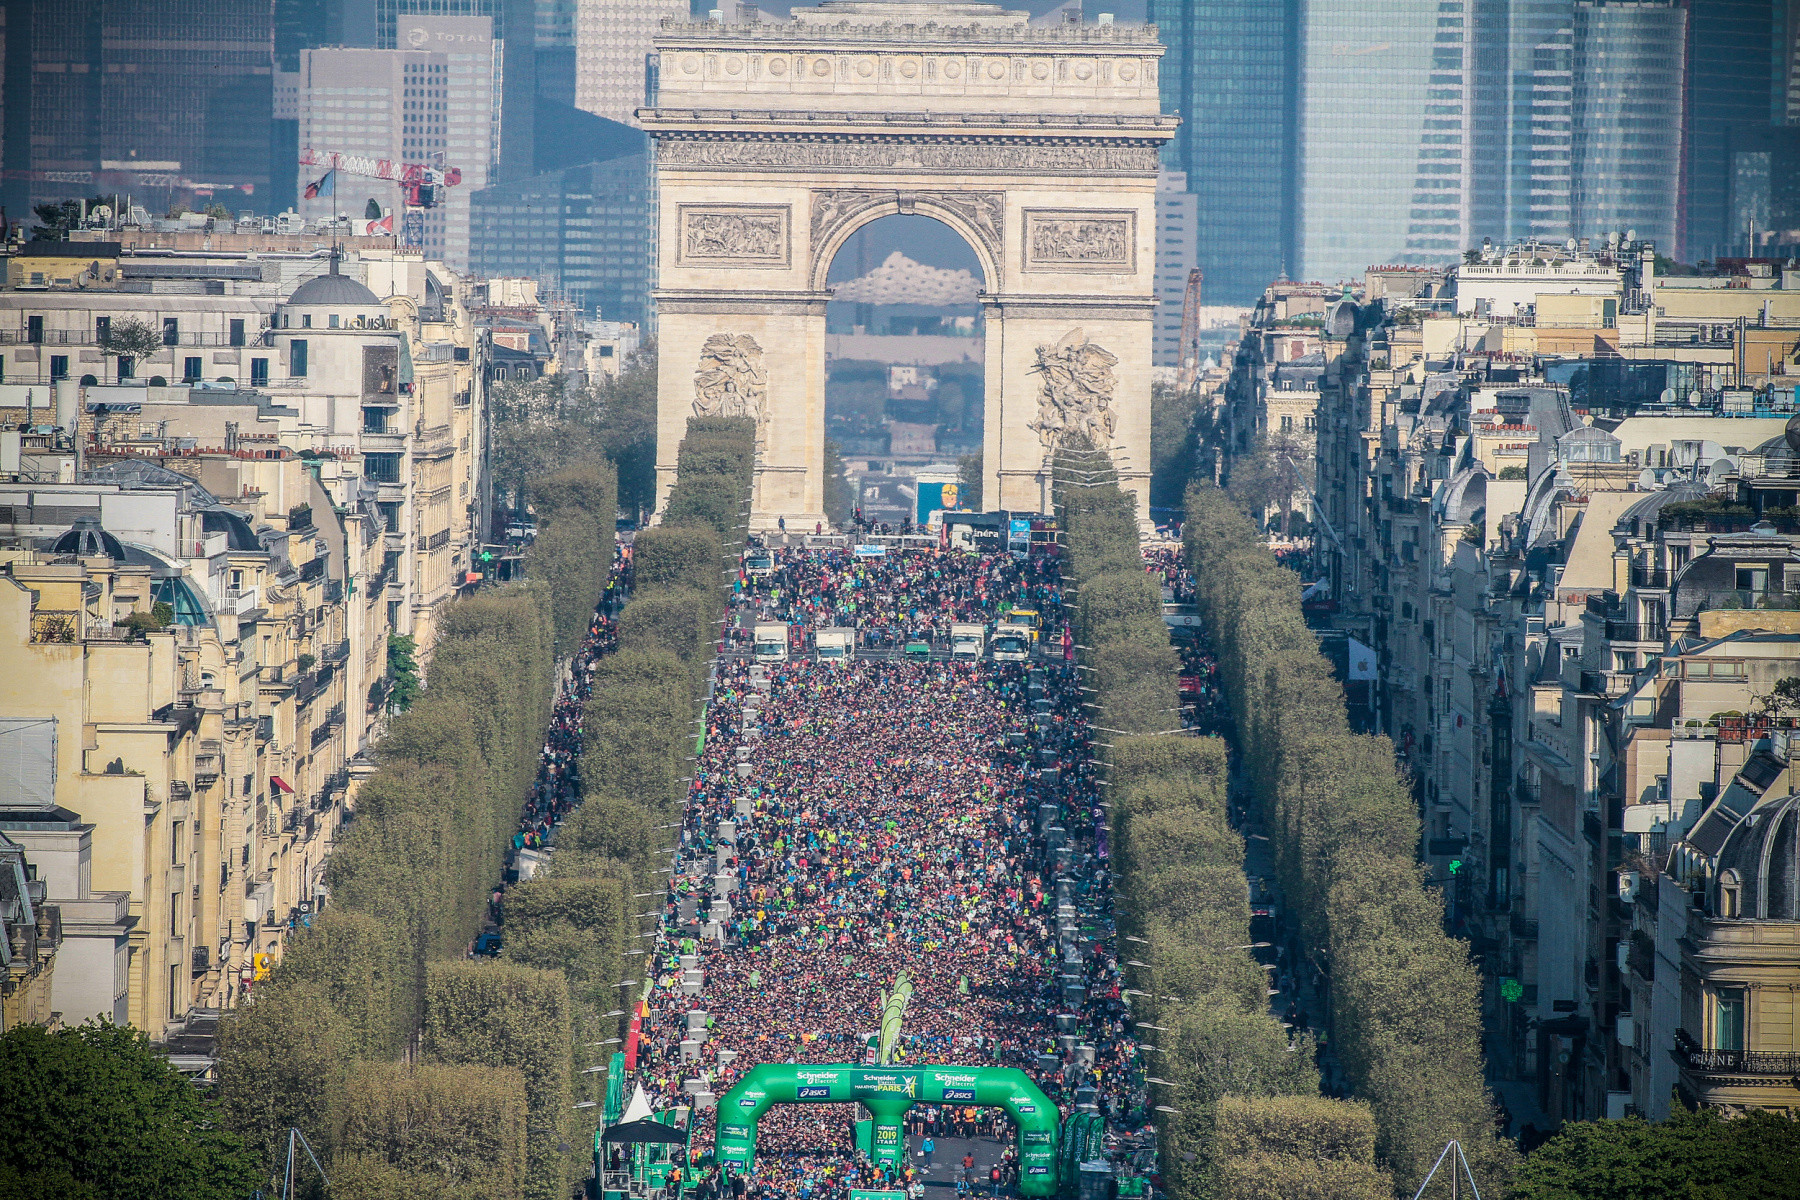 The Schneider Electric Marathon of Paris 2020, postponed to October due to coronavirus